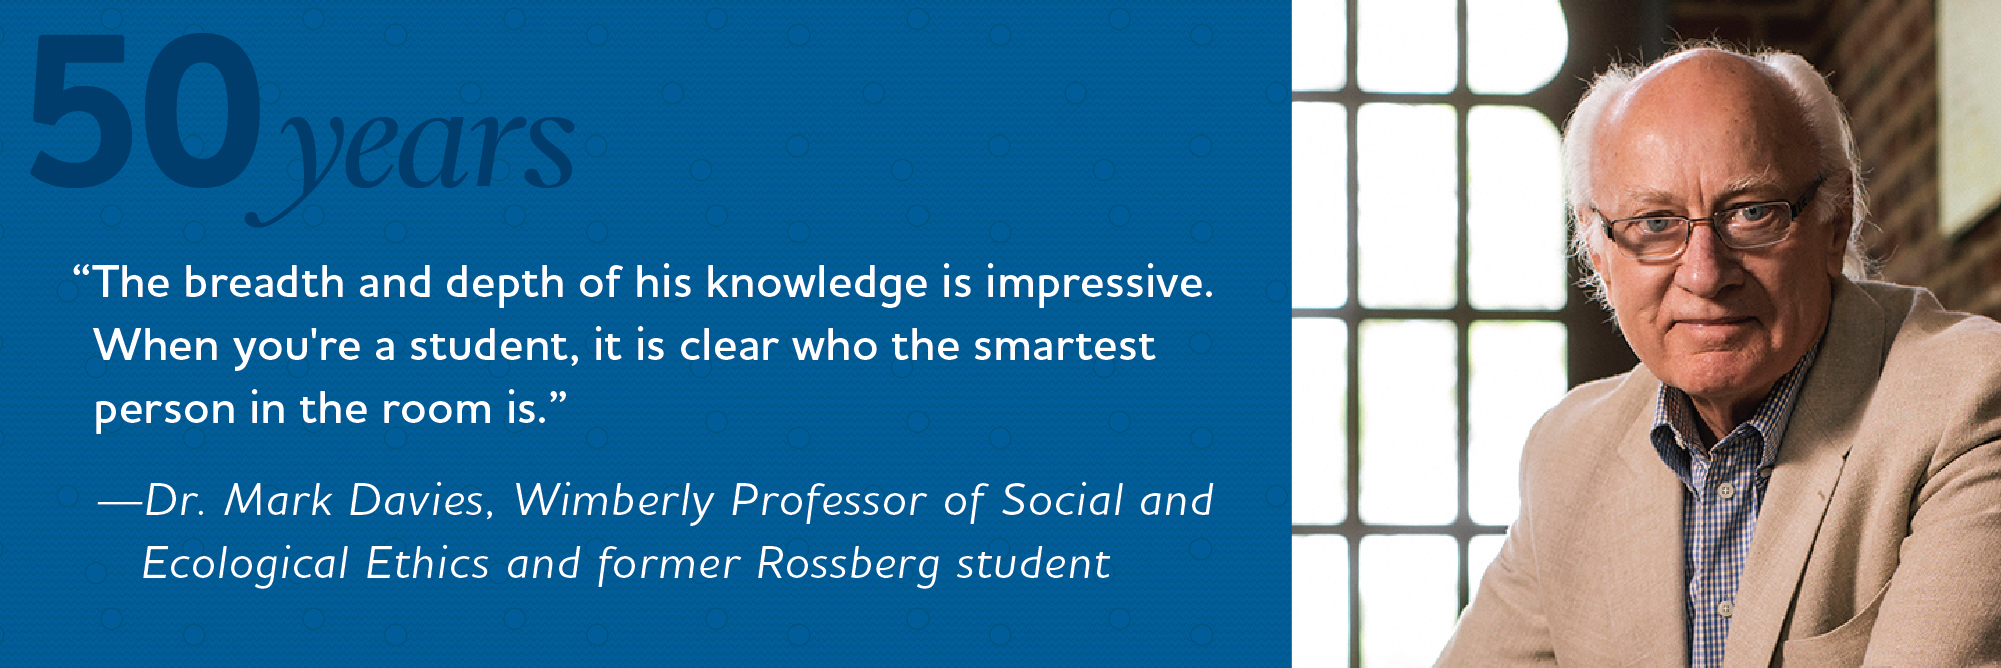 The breadth and depth of his knowledge is impressive. When you're a student, it is clear who the smartest person in the room is. Dr. Mark Davies, Wimberly Professor of Social and Ecological Ethics and former Rossberg student.